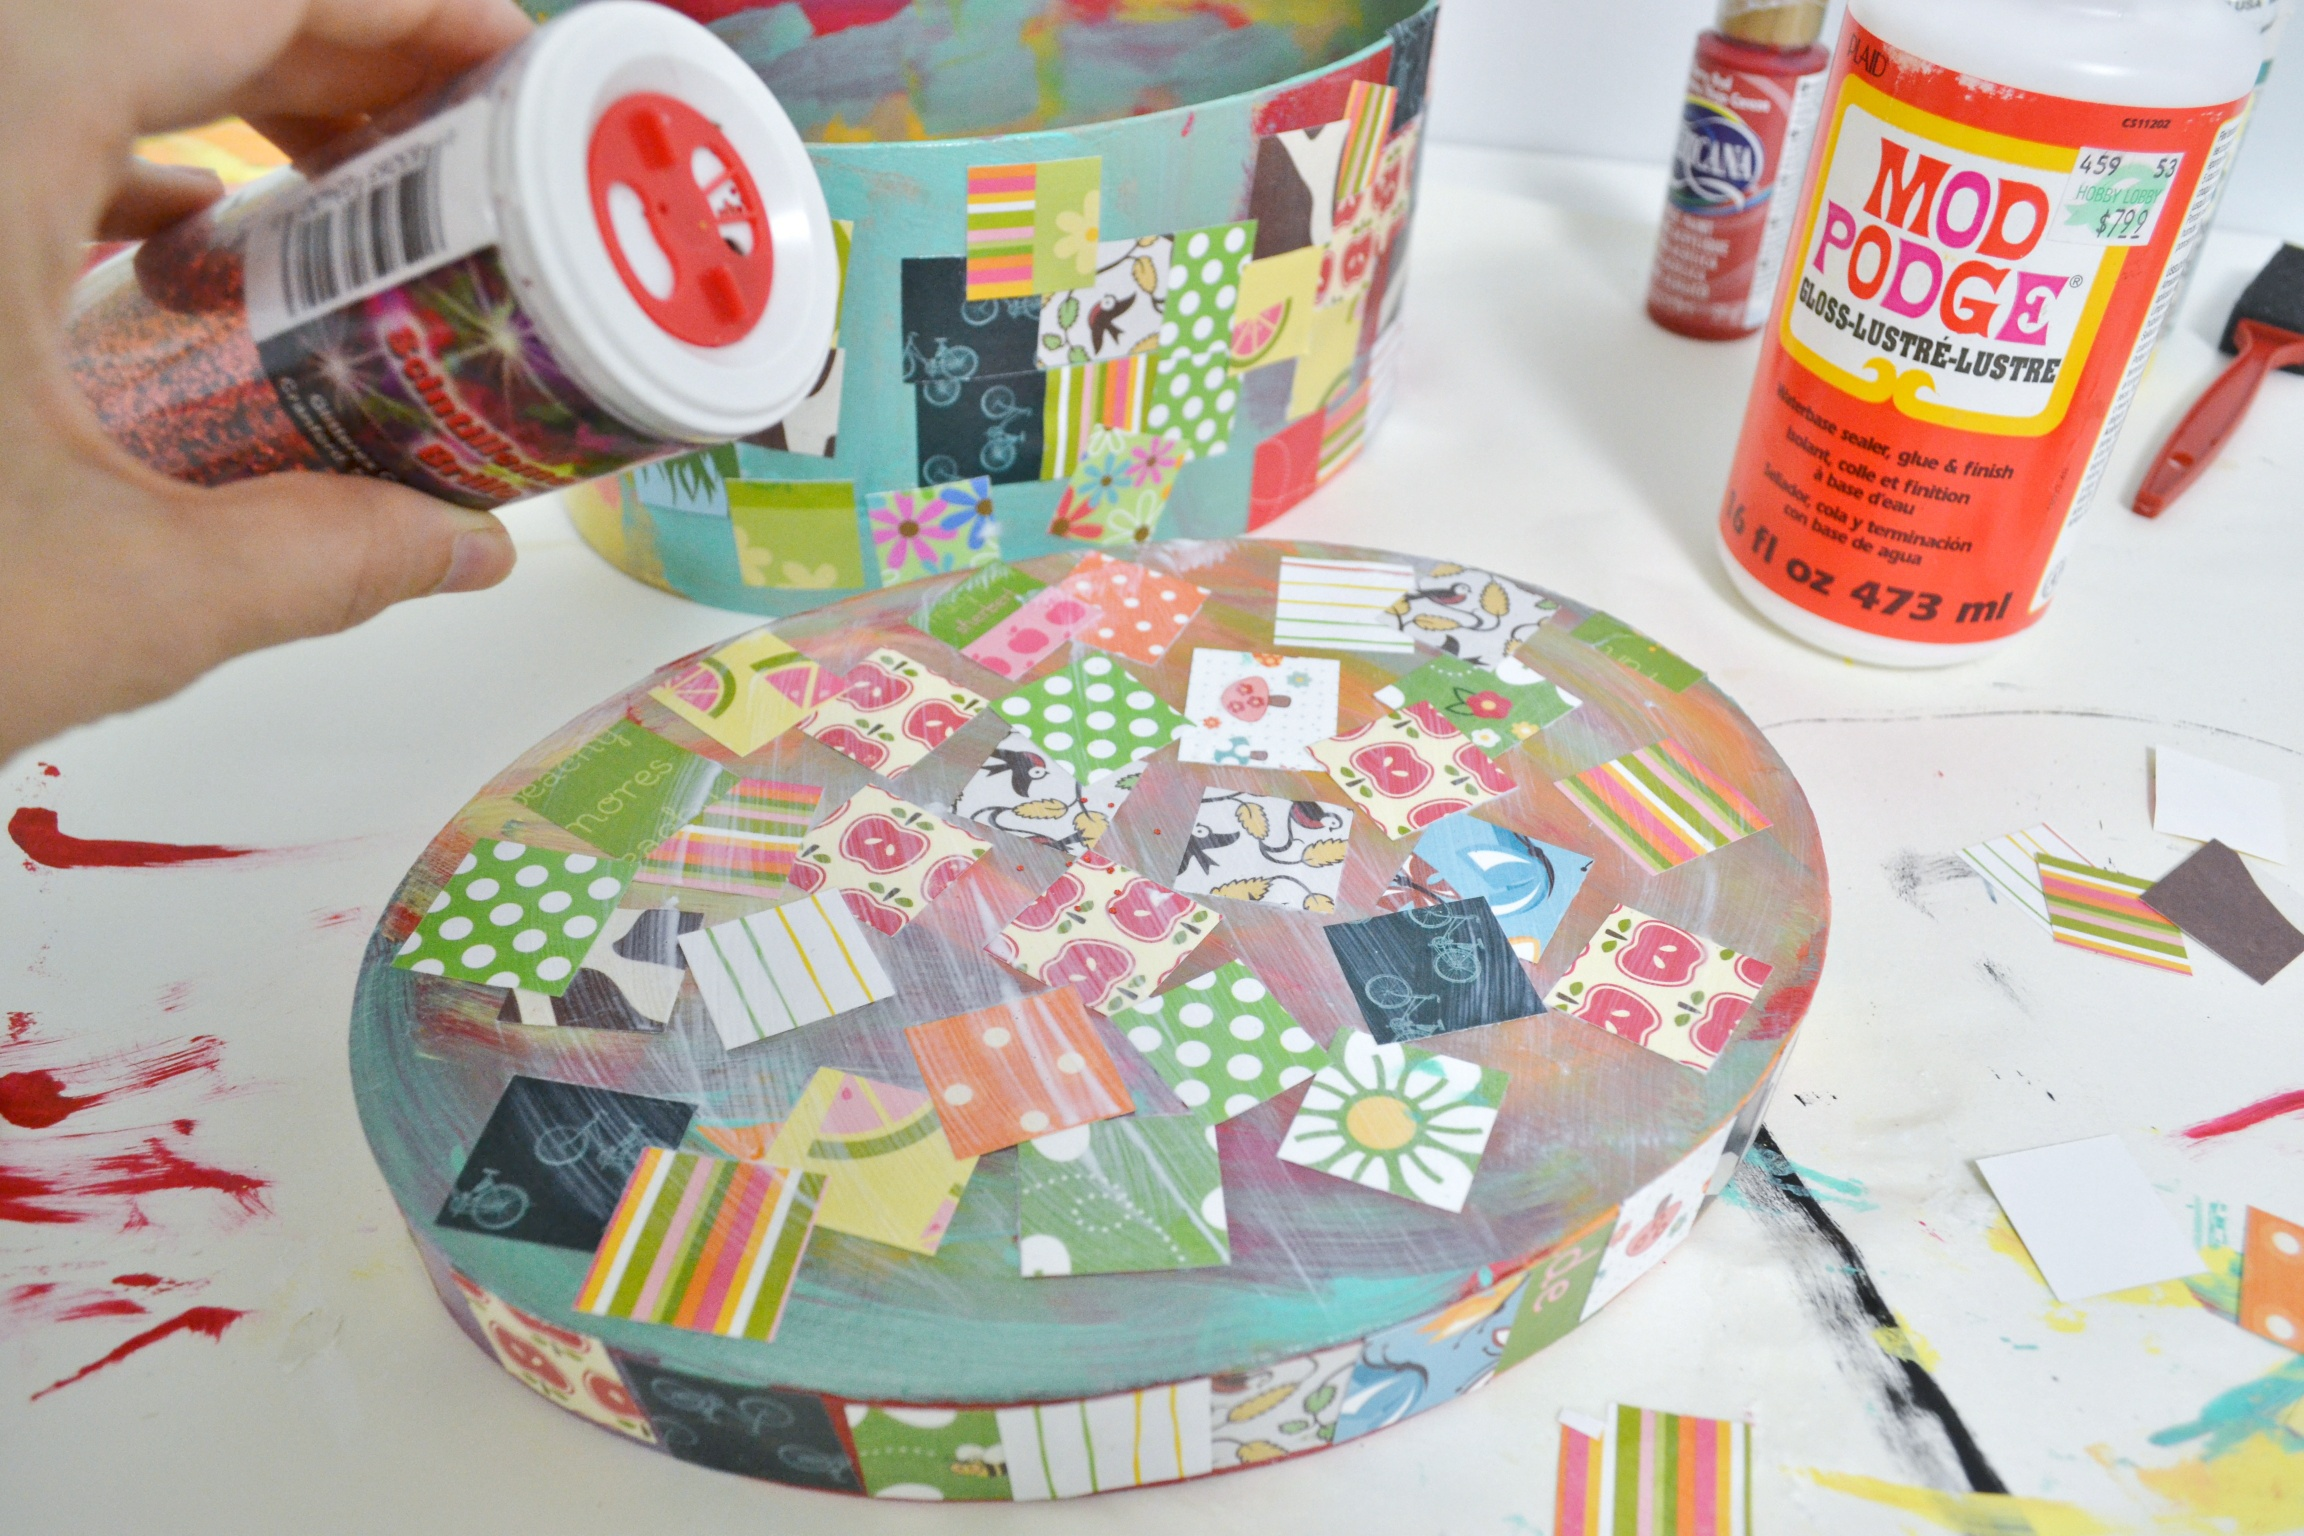 Easy diy crafts you can do with burlap - Easy Kids Craft Decoupage Treasure Box Mod Podge Rocks